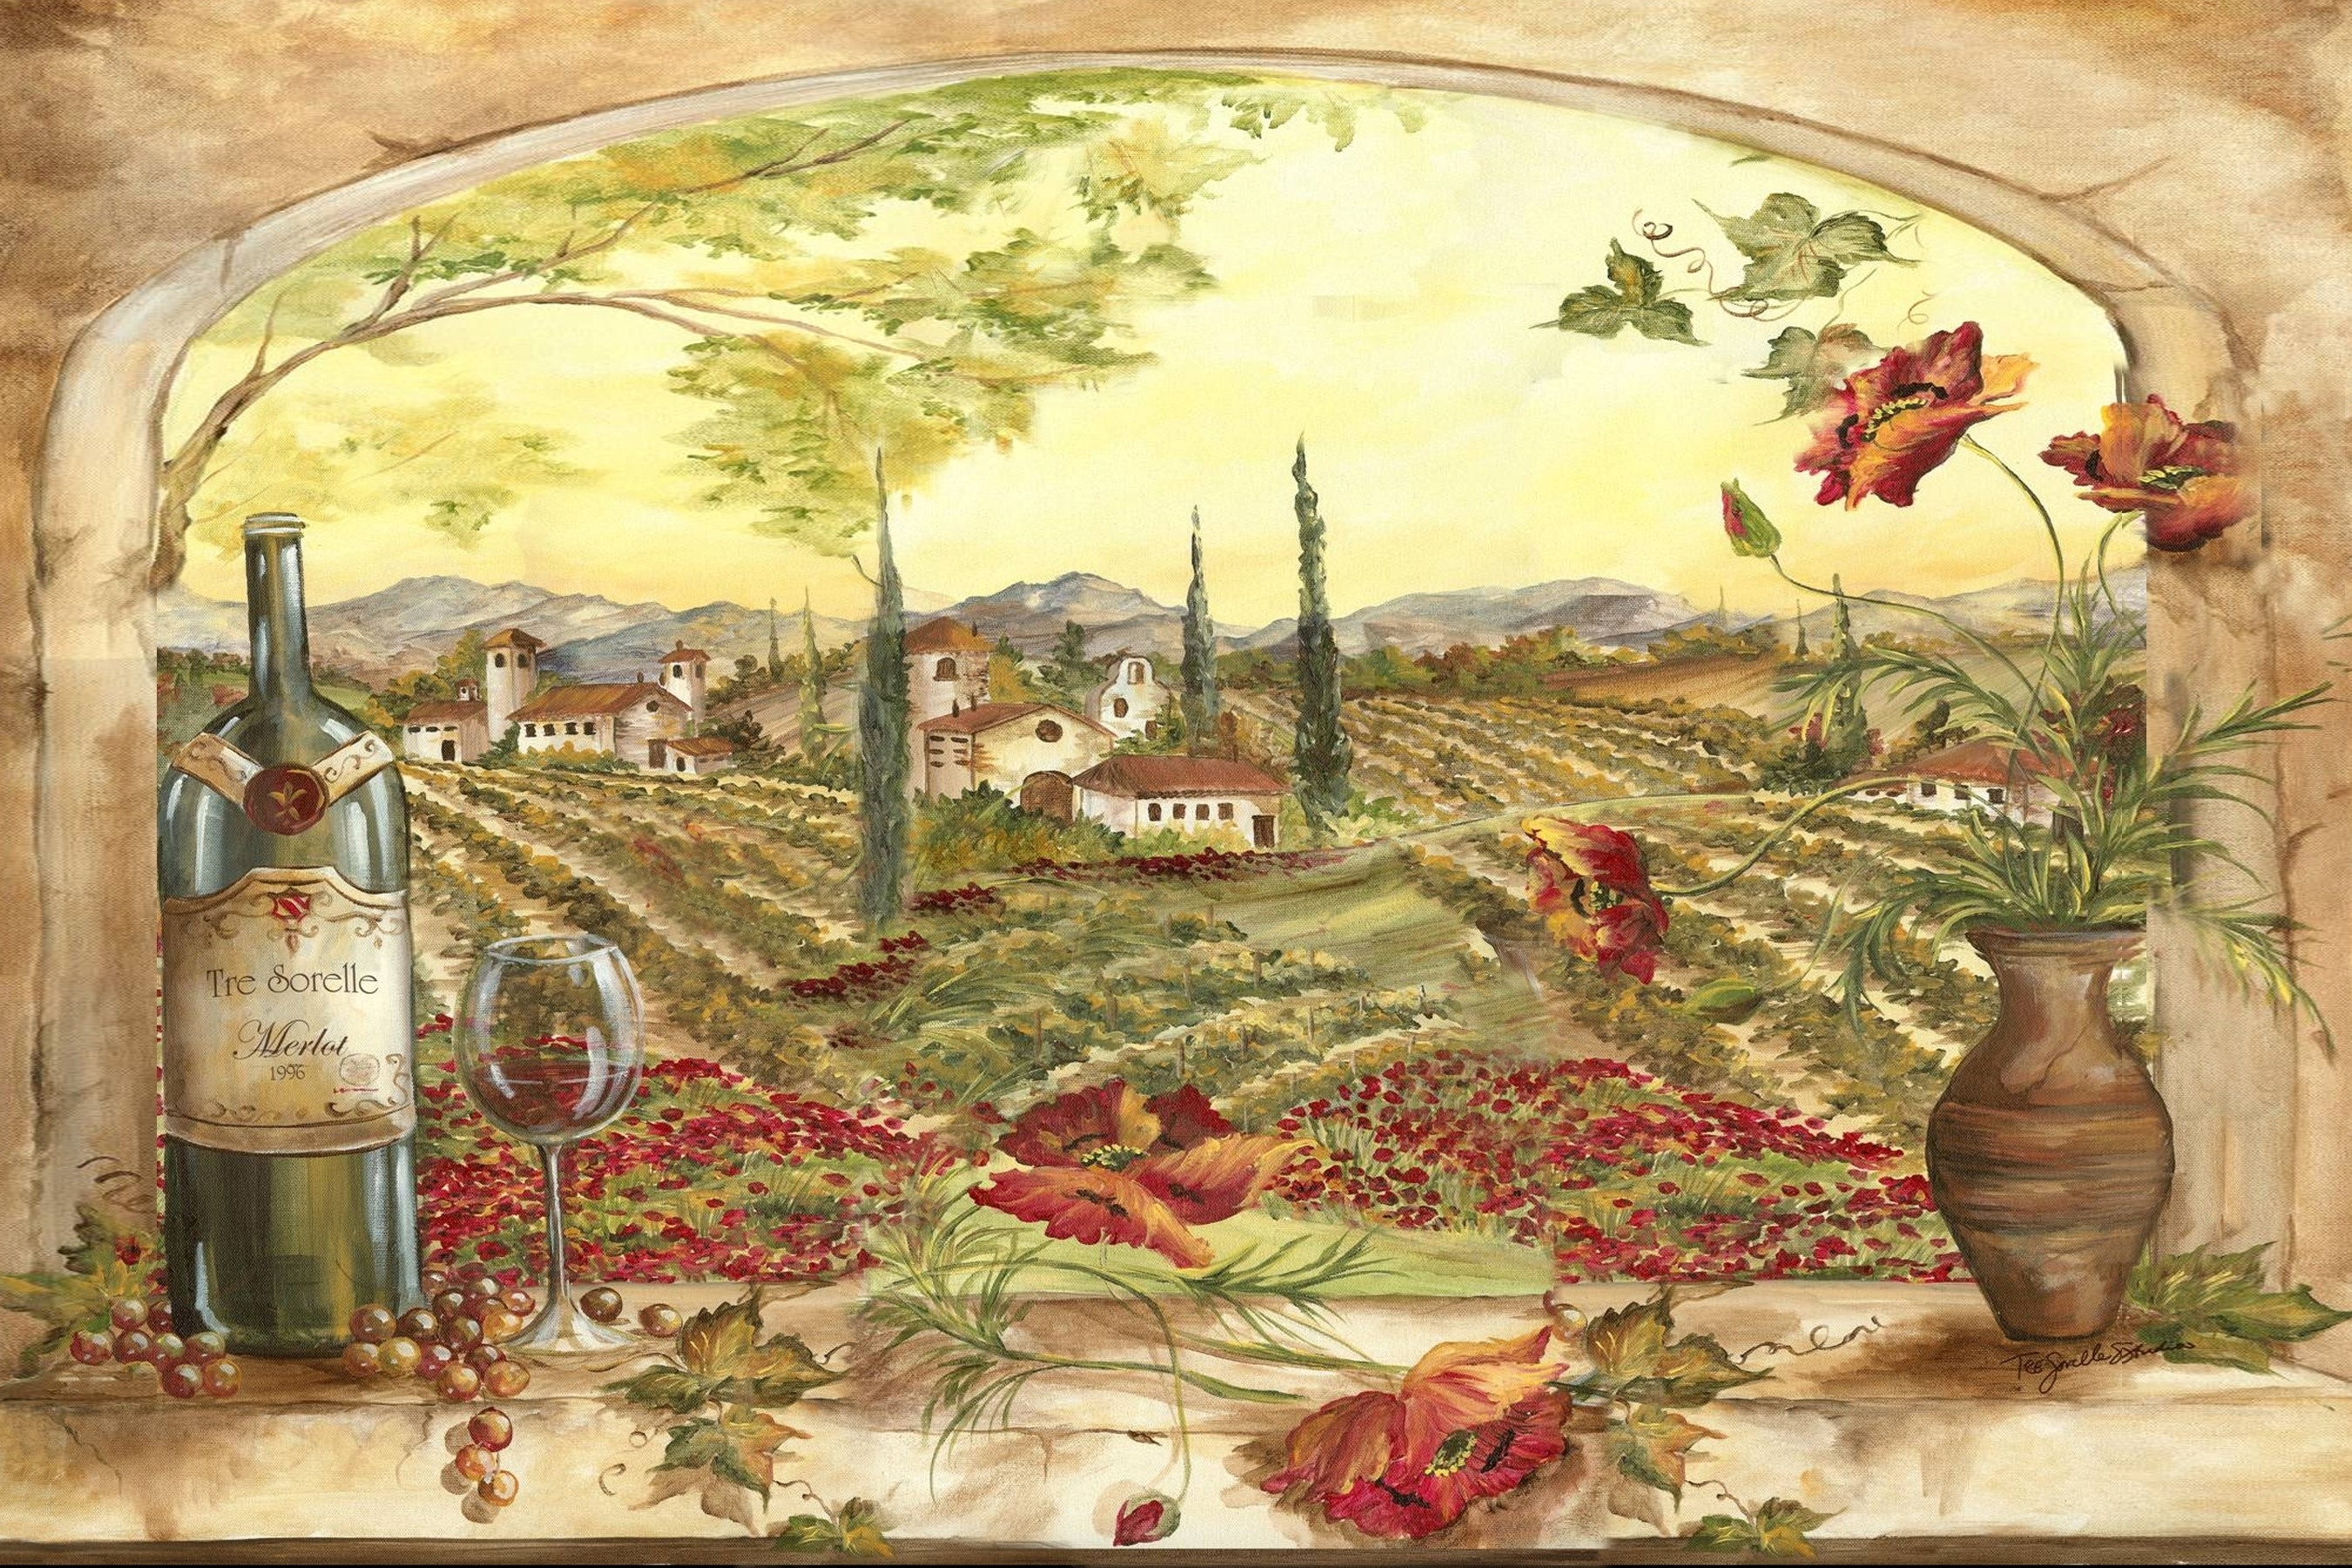 Tuscan Kitchen Wall Art World Of Example, Tuscany Kitchen Wall Art For Tuscan Wall Art (View 17 of 20)